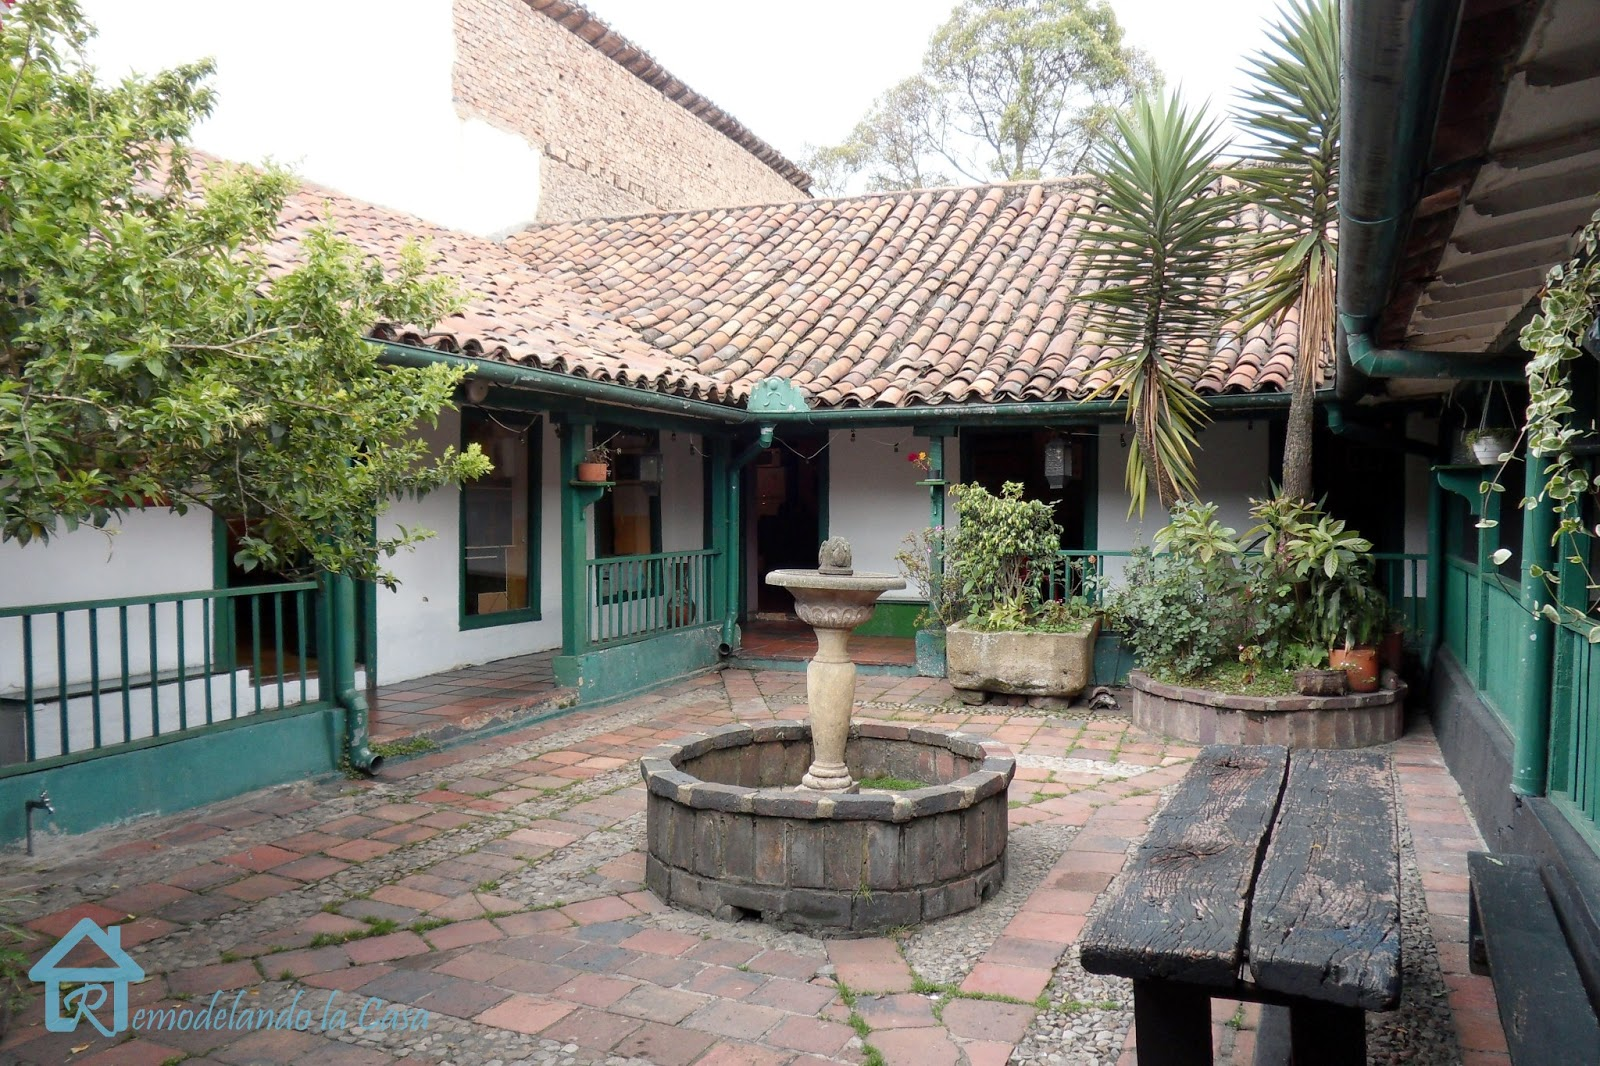 Spanish colonial crush remodelando la casa for Homes with courtyards in the middle